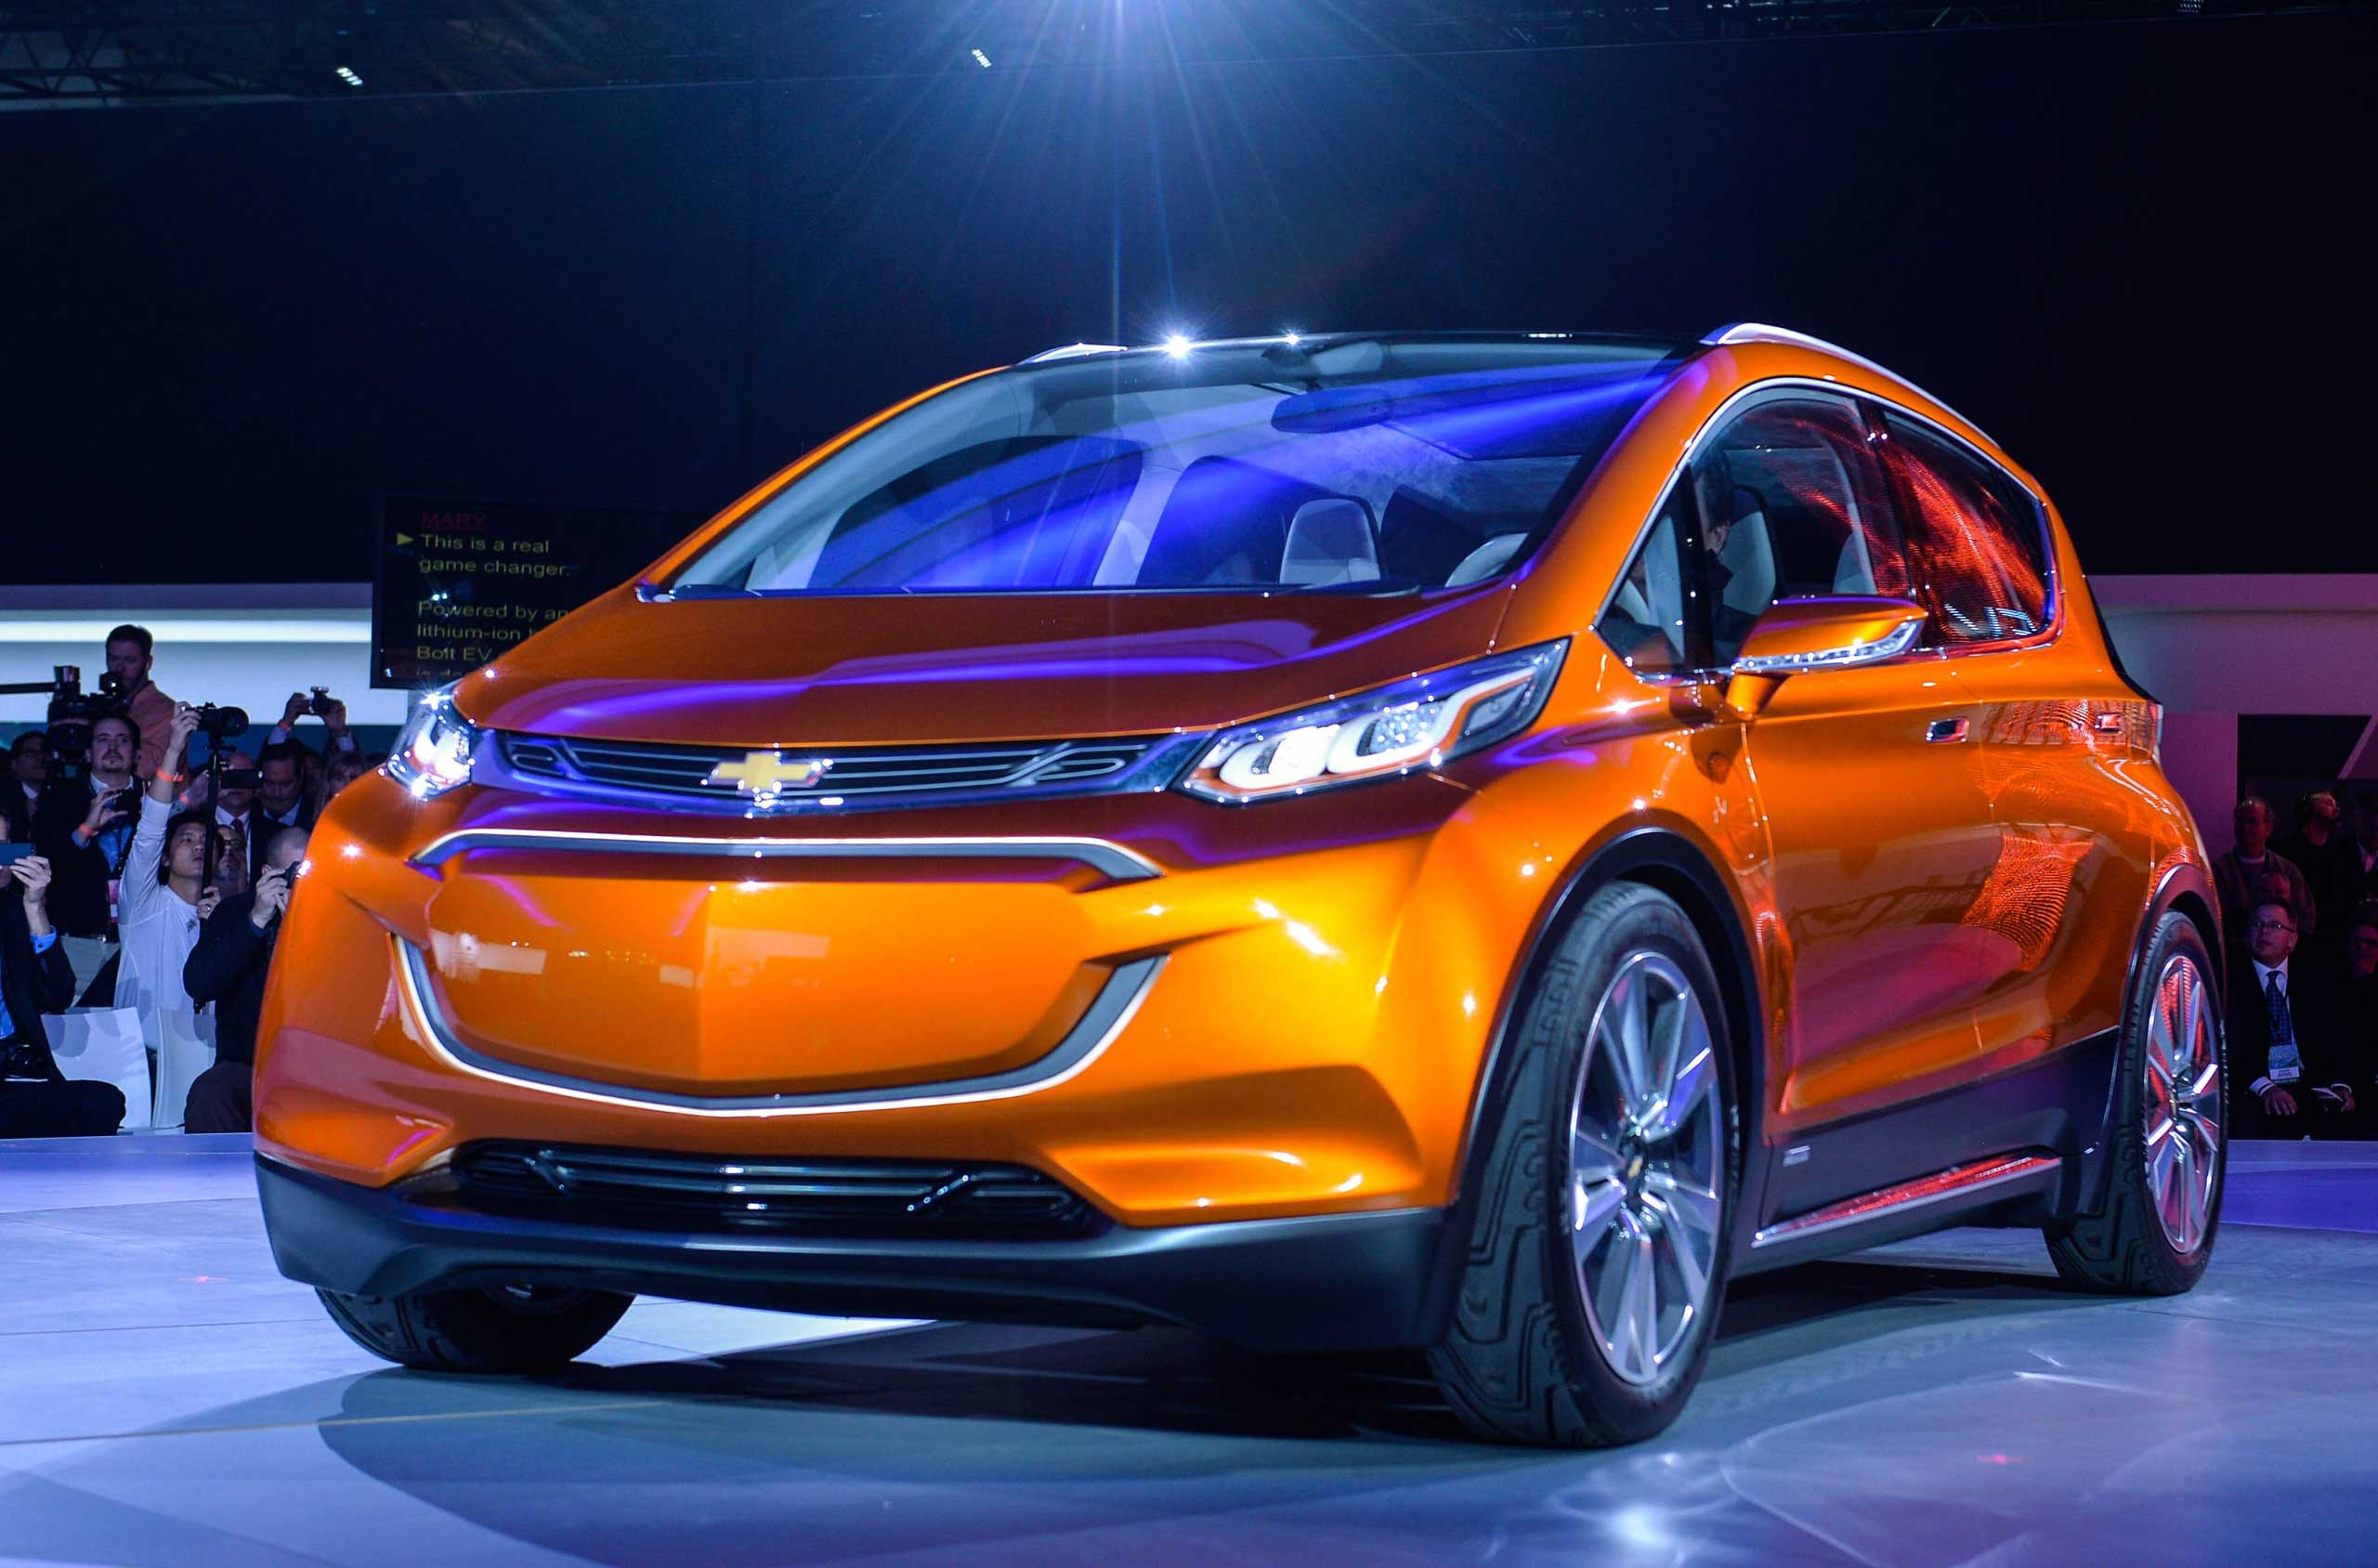 Chevrolet unveils a new concept car bolt during a press preview on Jan. 12, 2015 in Detroit.